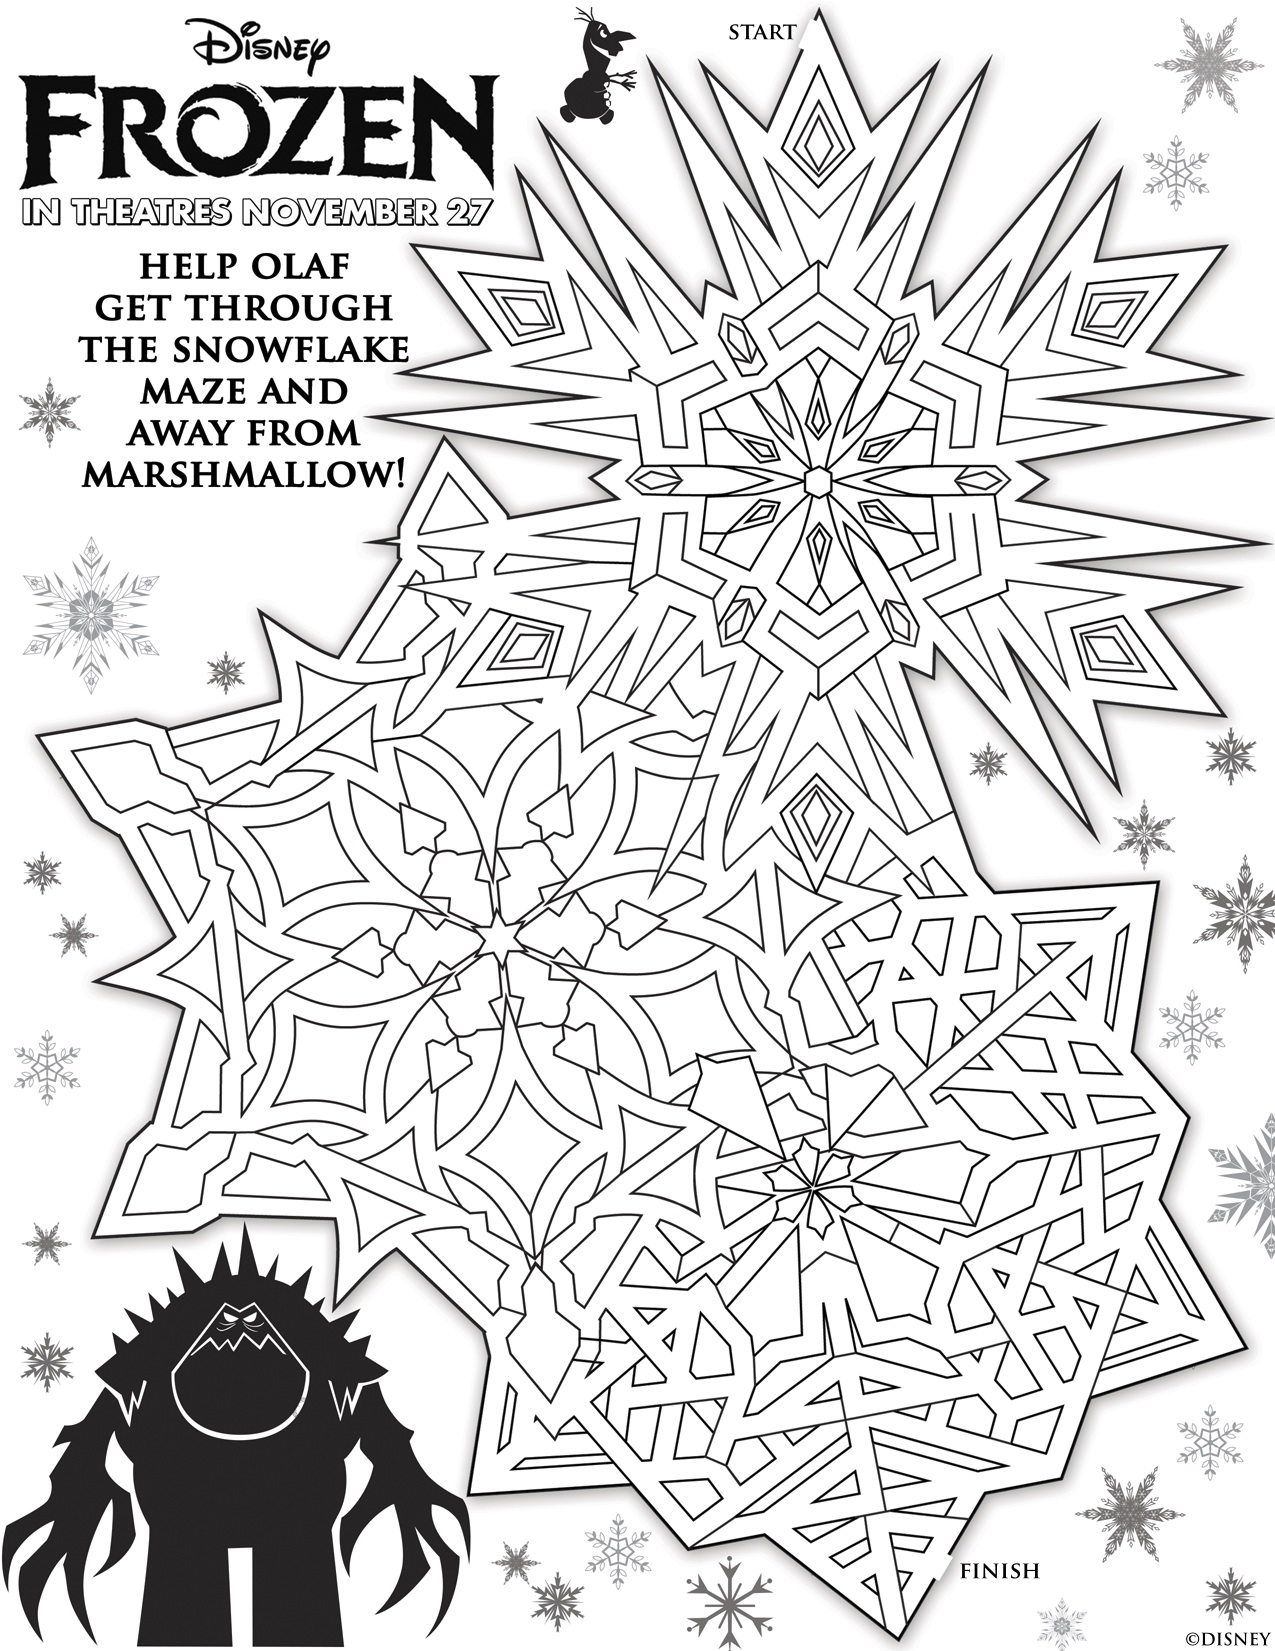 Complicated Coloring Pages For Adults | new page 1 printable ... | 1651x1275